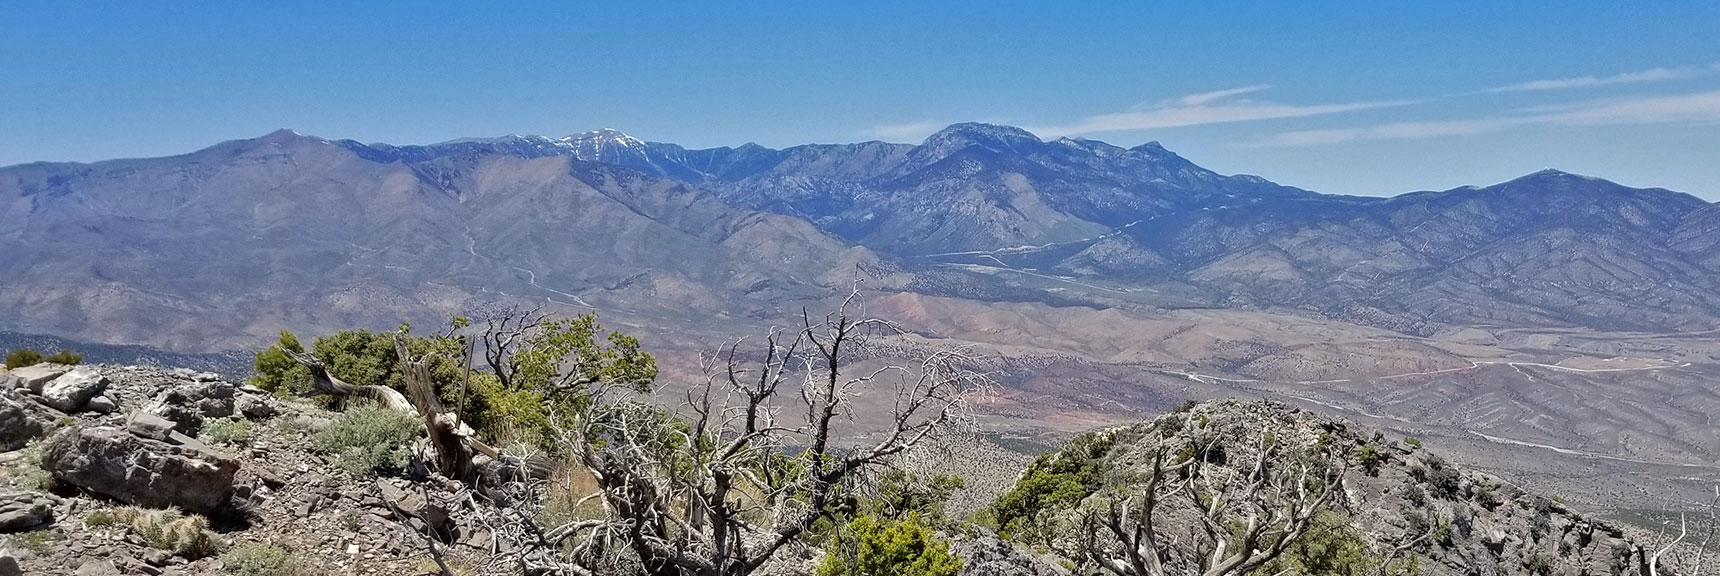 Mt. Charleston Wilderness Viewed from La Madre Mountain Summit | La Madre Mountain Northern Approach, Nevada